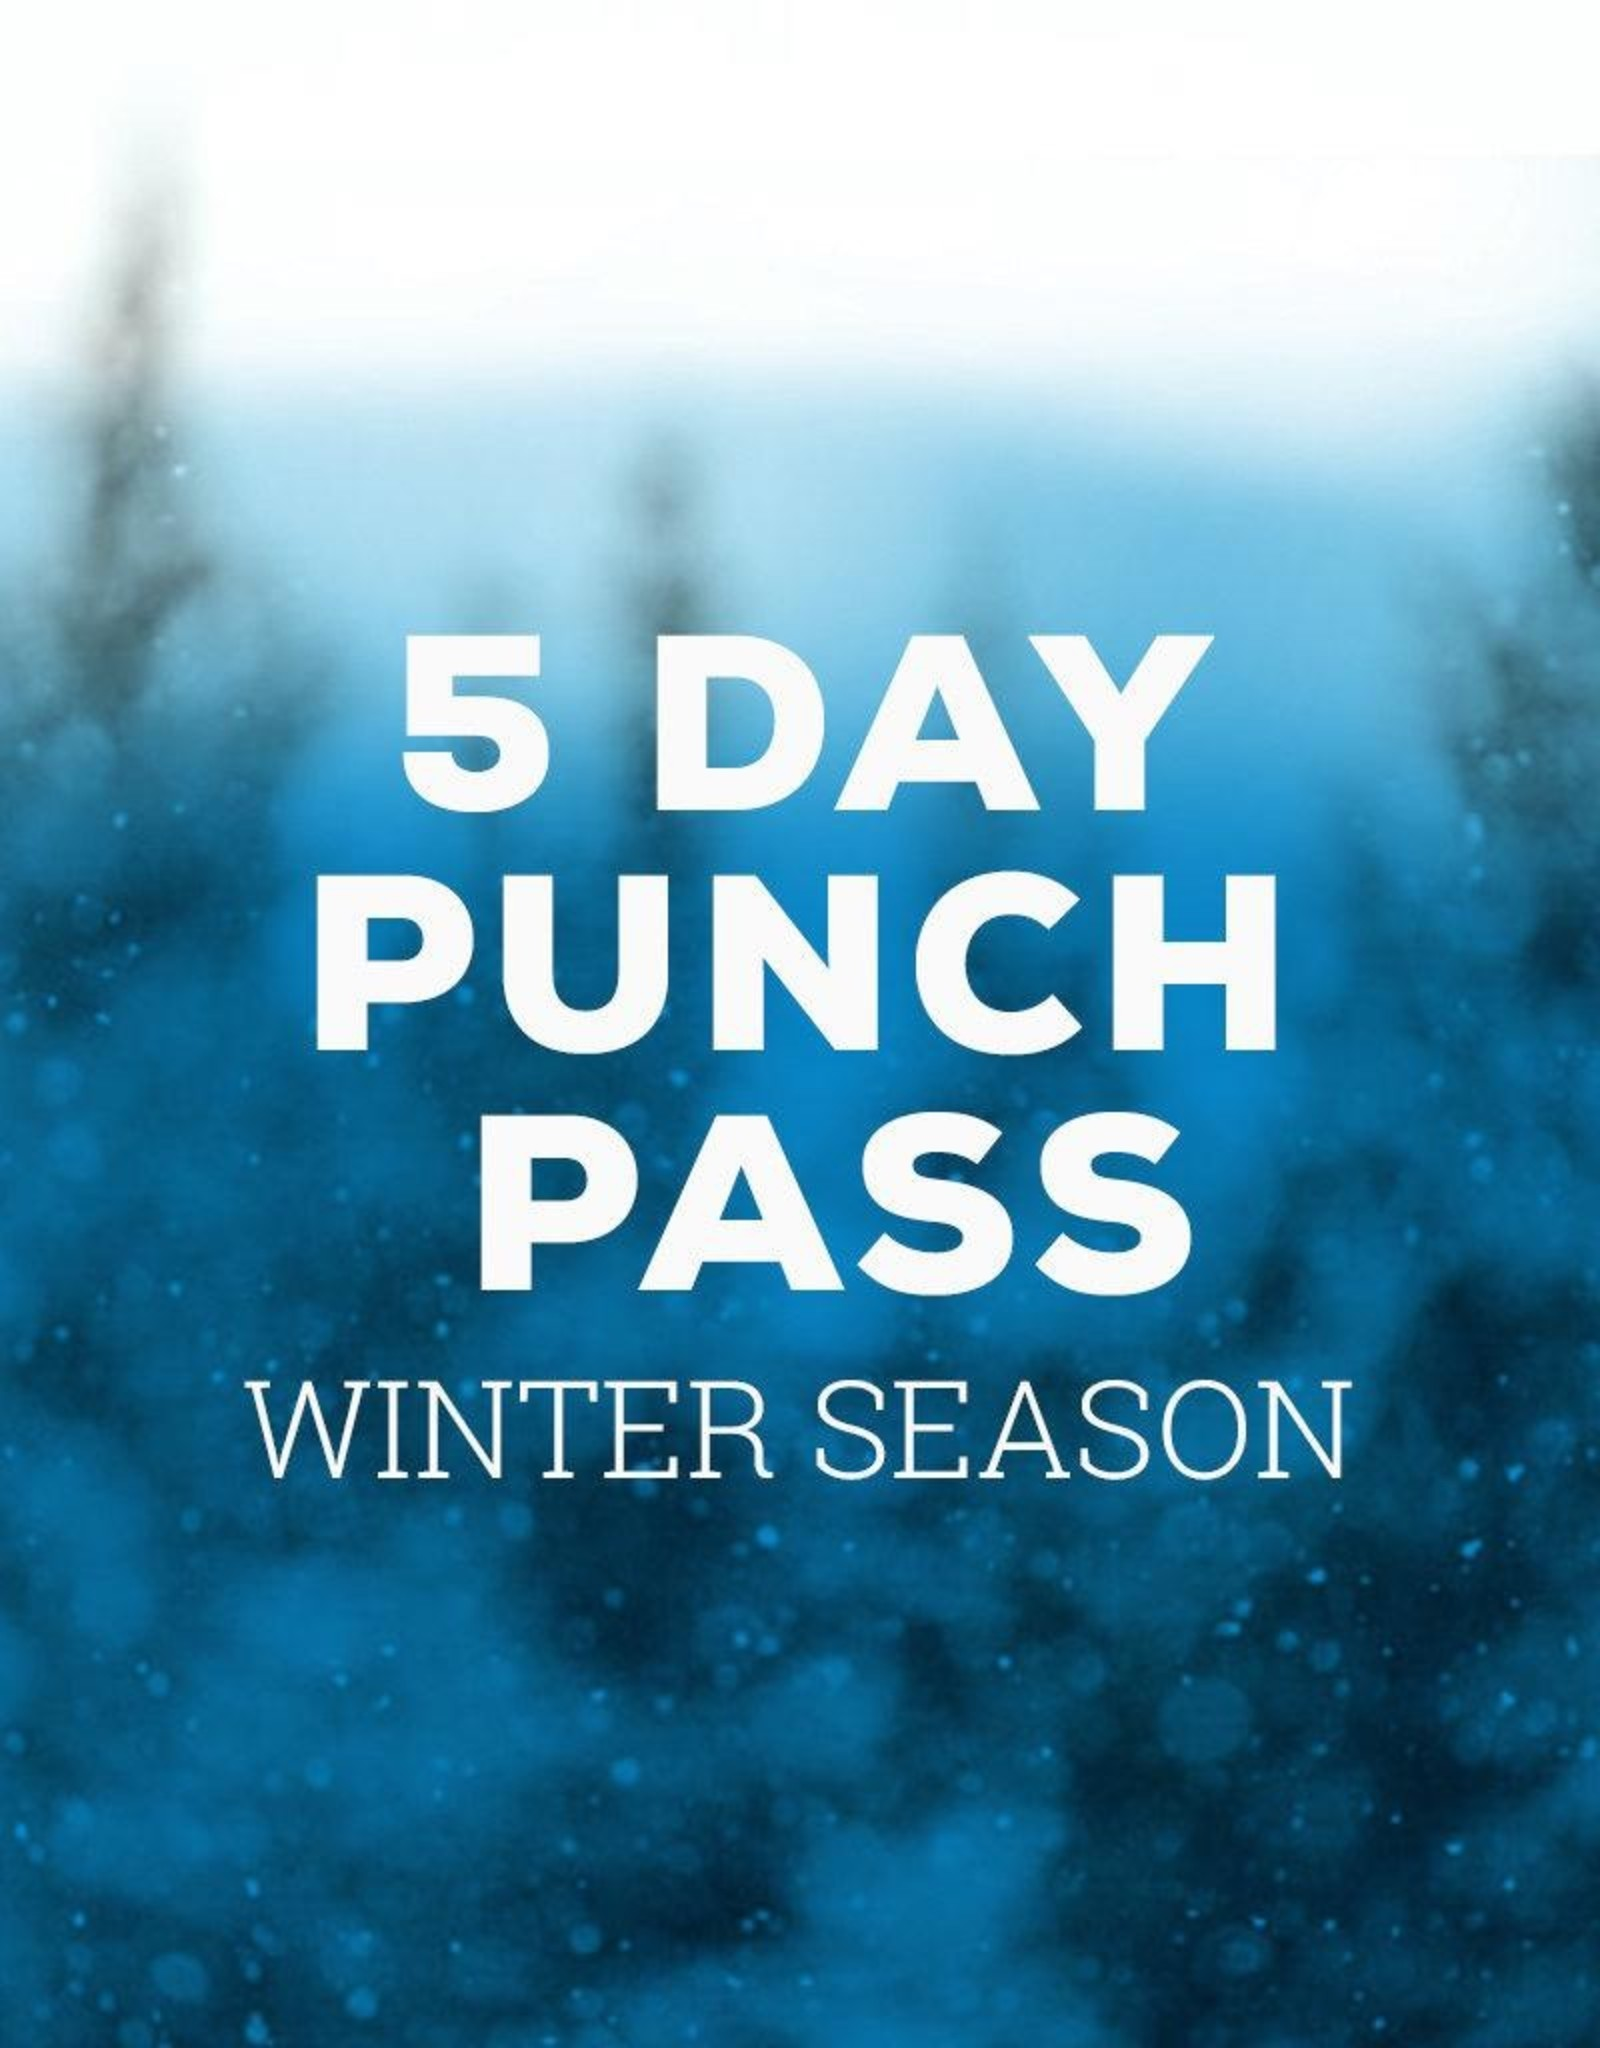 Sima Winter Season 5 Day Punch Pass - Multi-User